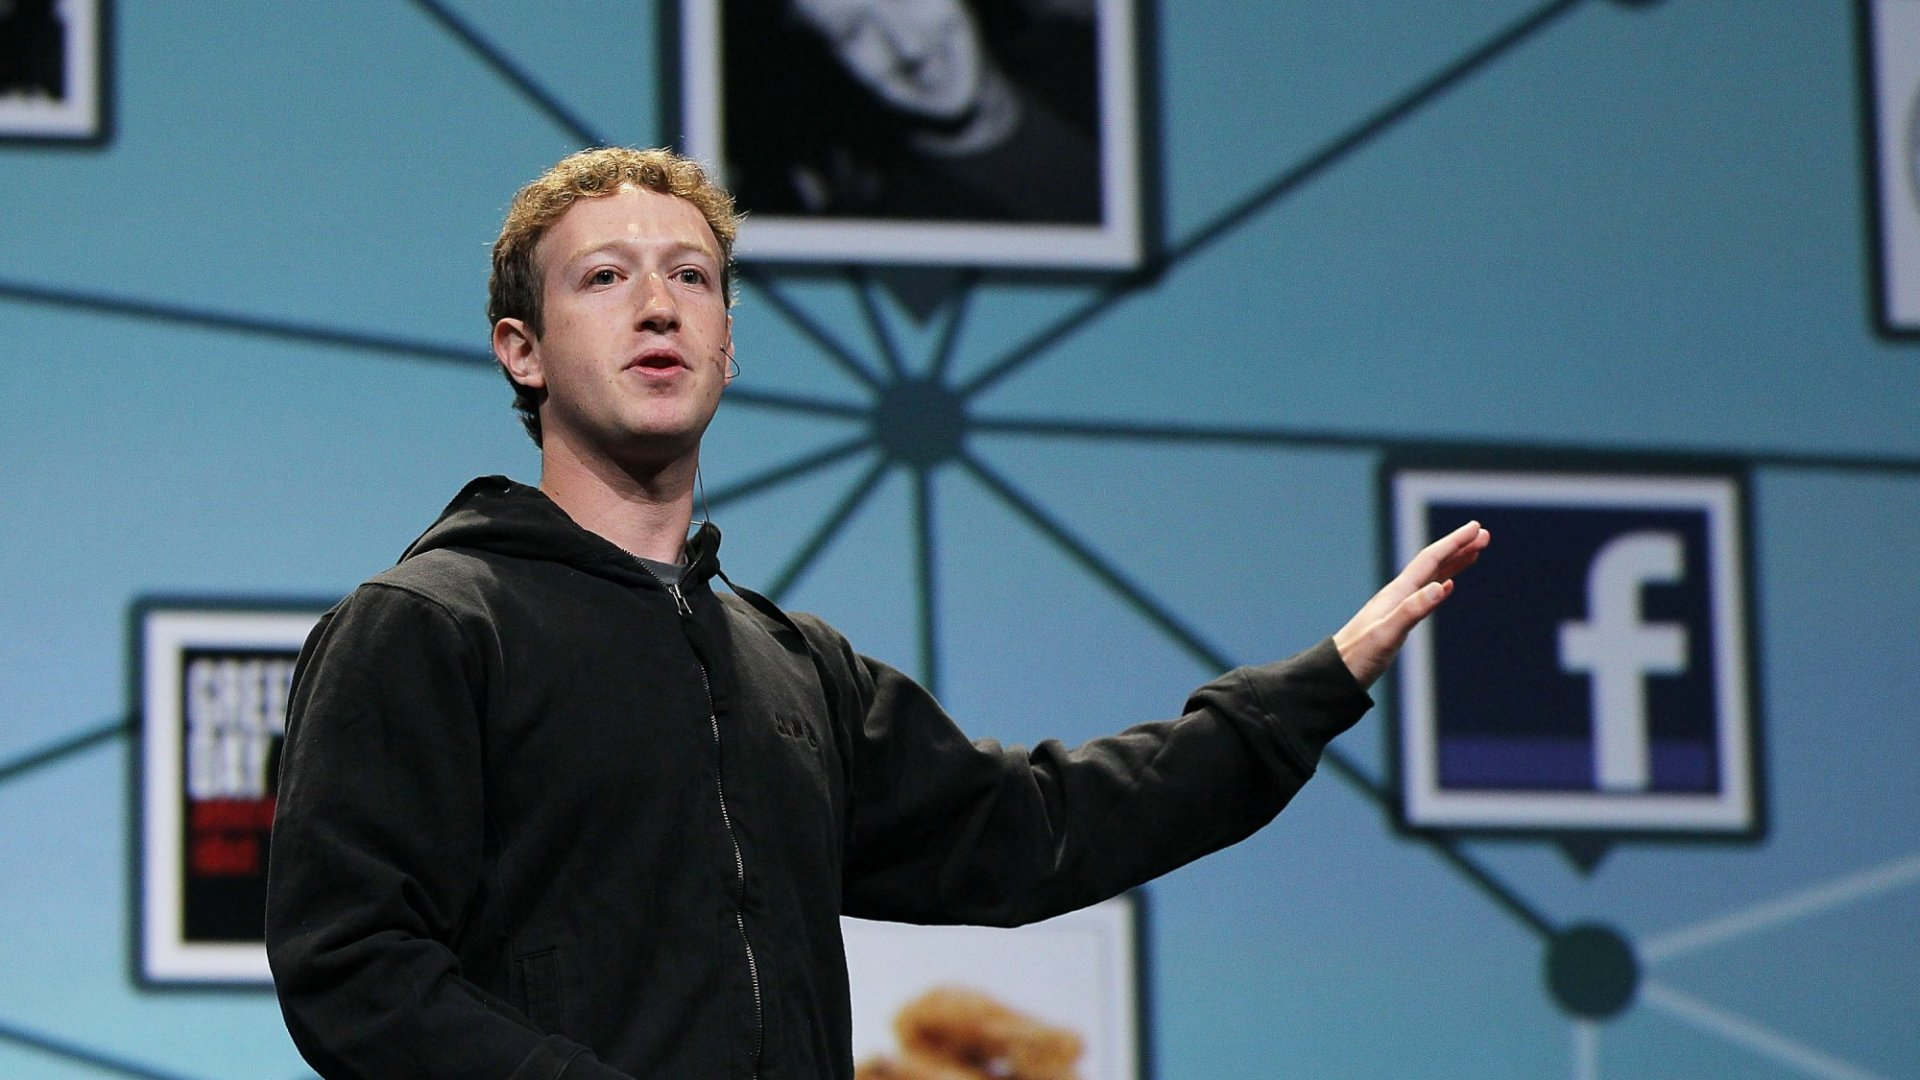 Facebook's New Open Source Software Can Learn 1 Billion Words in 10 Minutes